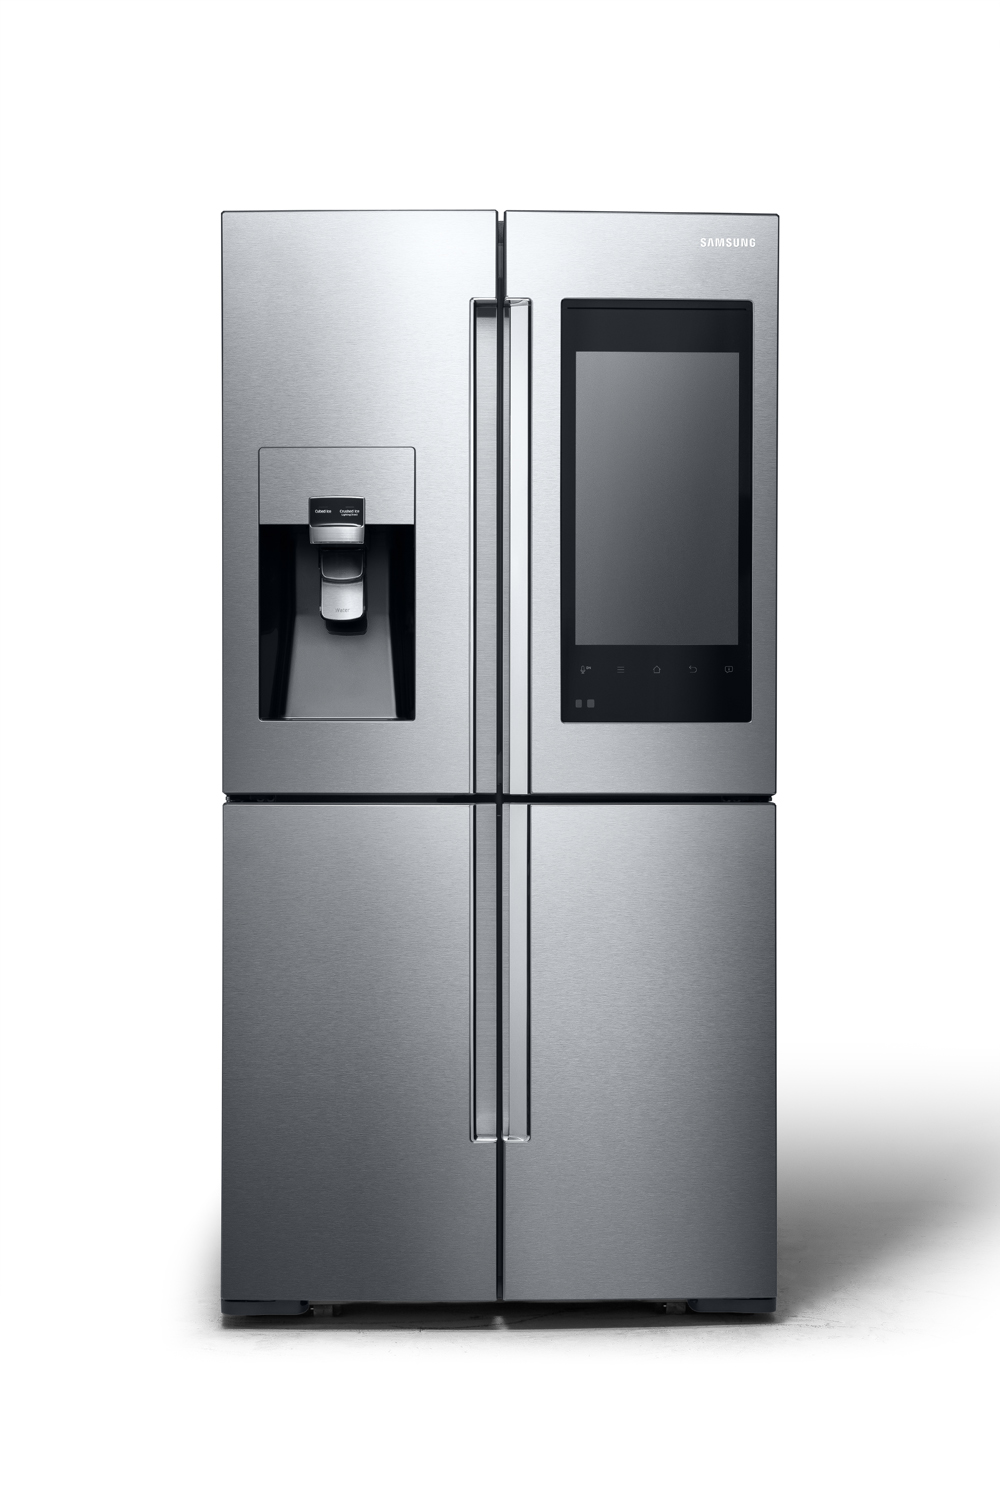 samsung-smart-fridge-2016-2